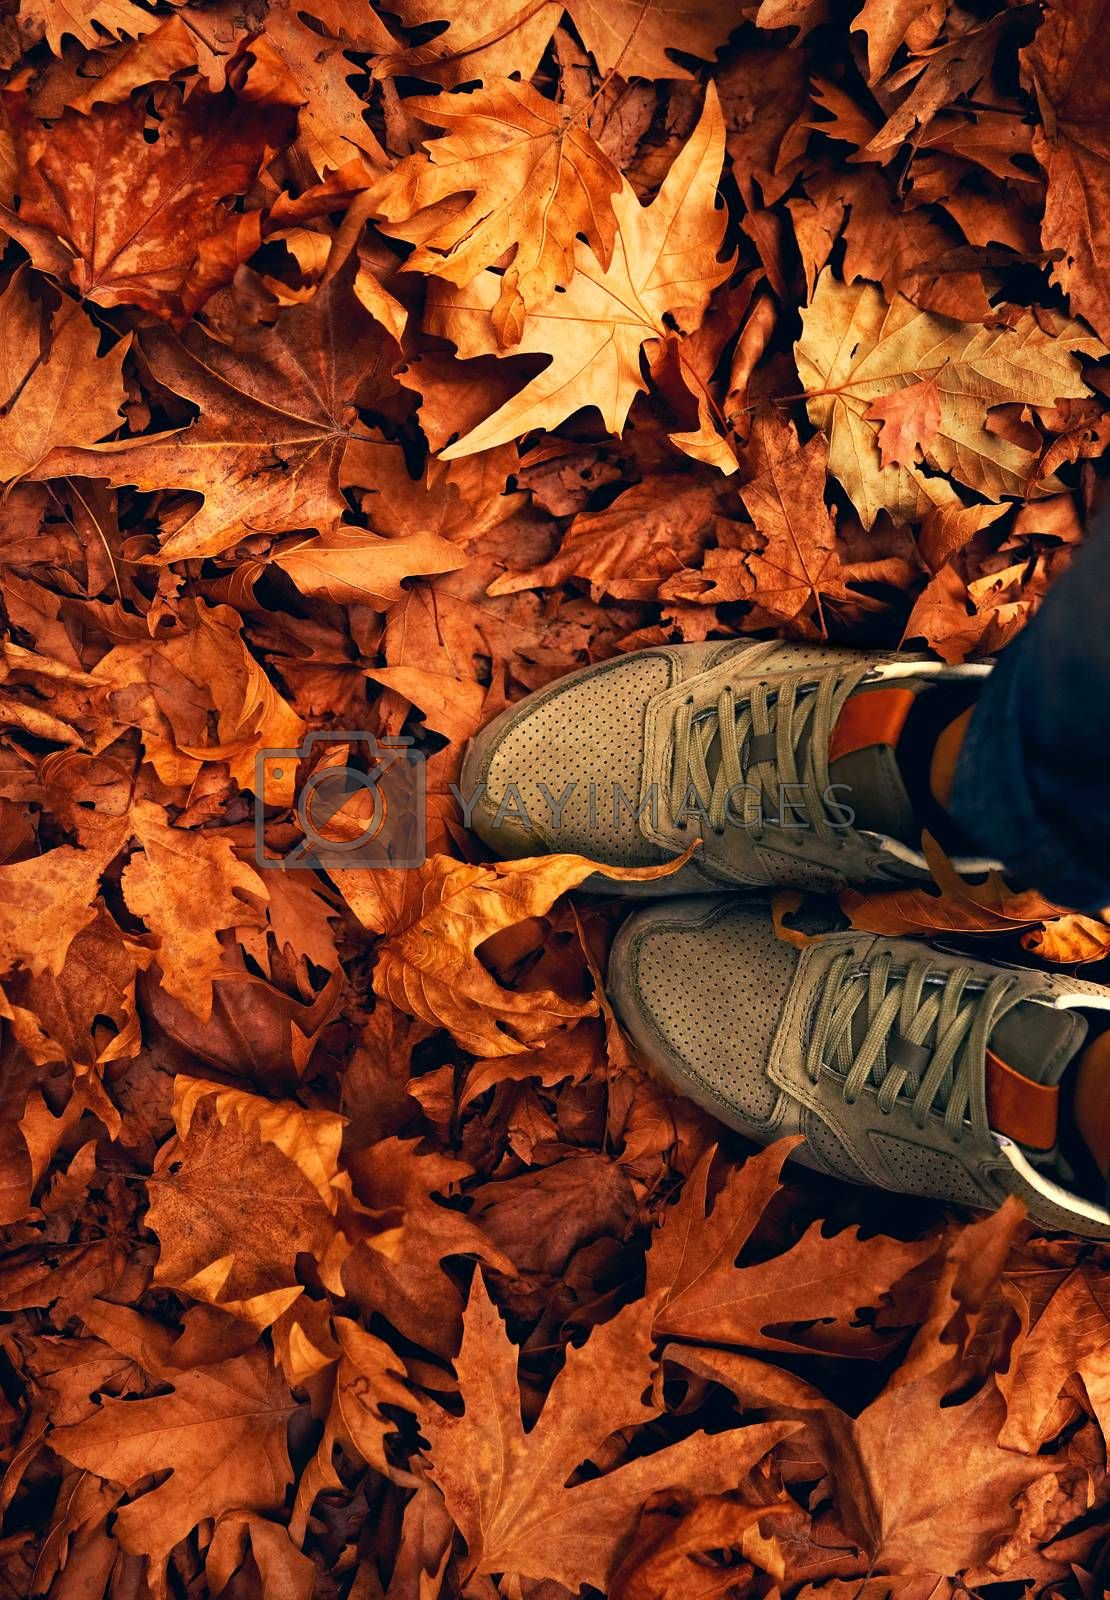 Women's shoes on the ground, floor covered with dry fall leaves, walking in the park, autumn weather concept